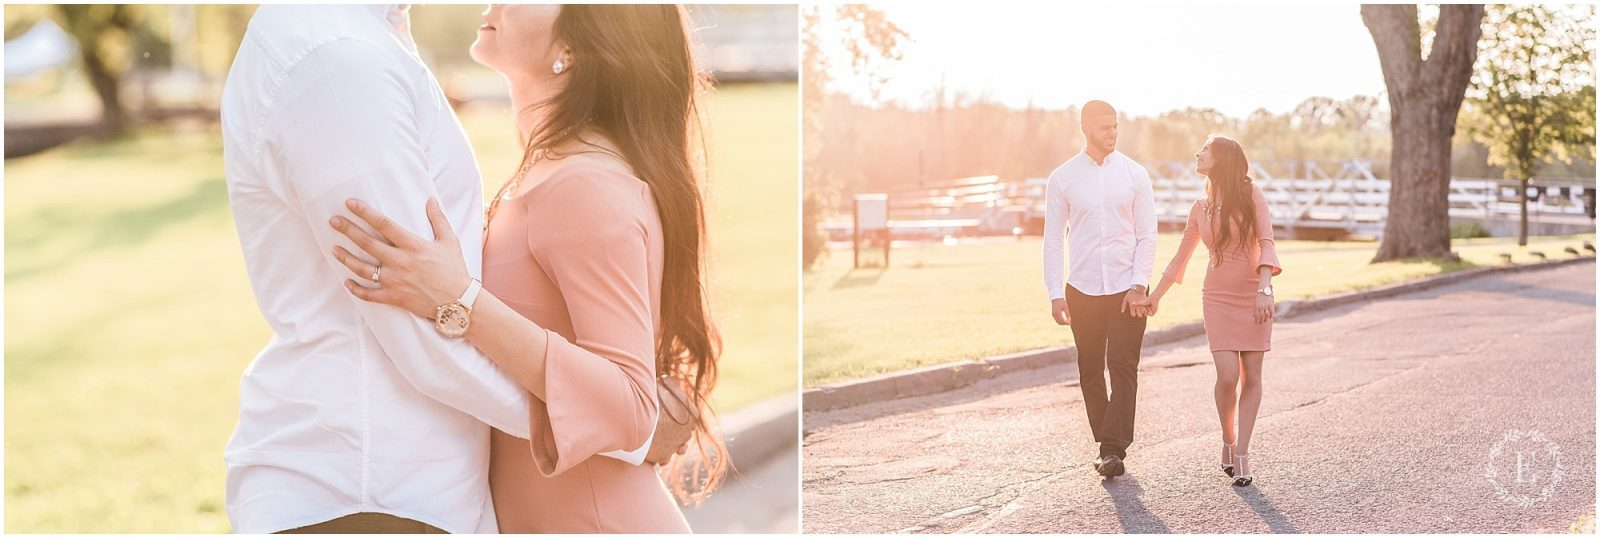 Engagement - Long Island Locks - Ottawa - golden hour